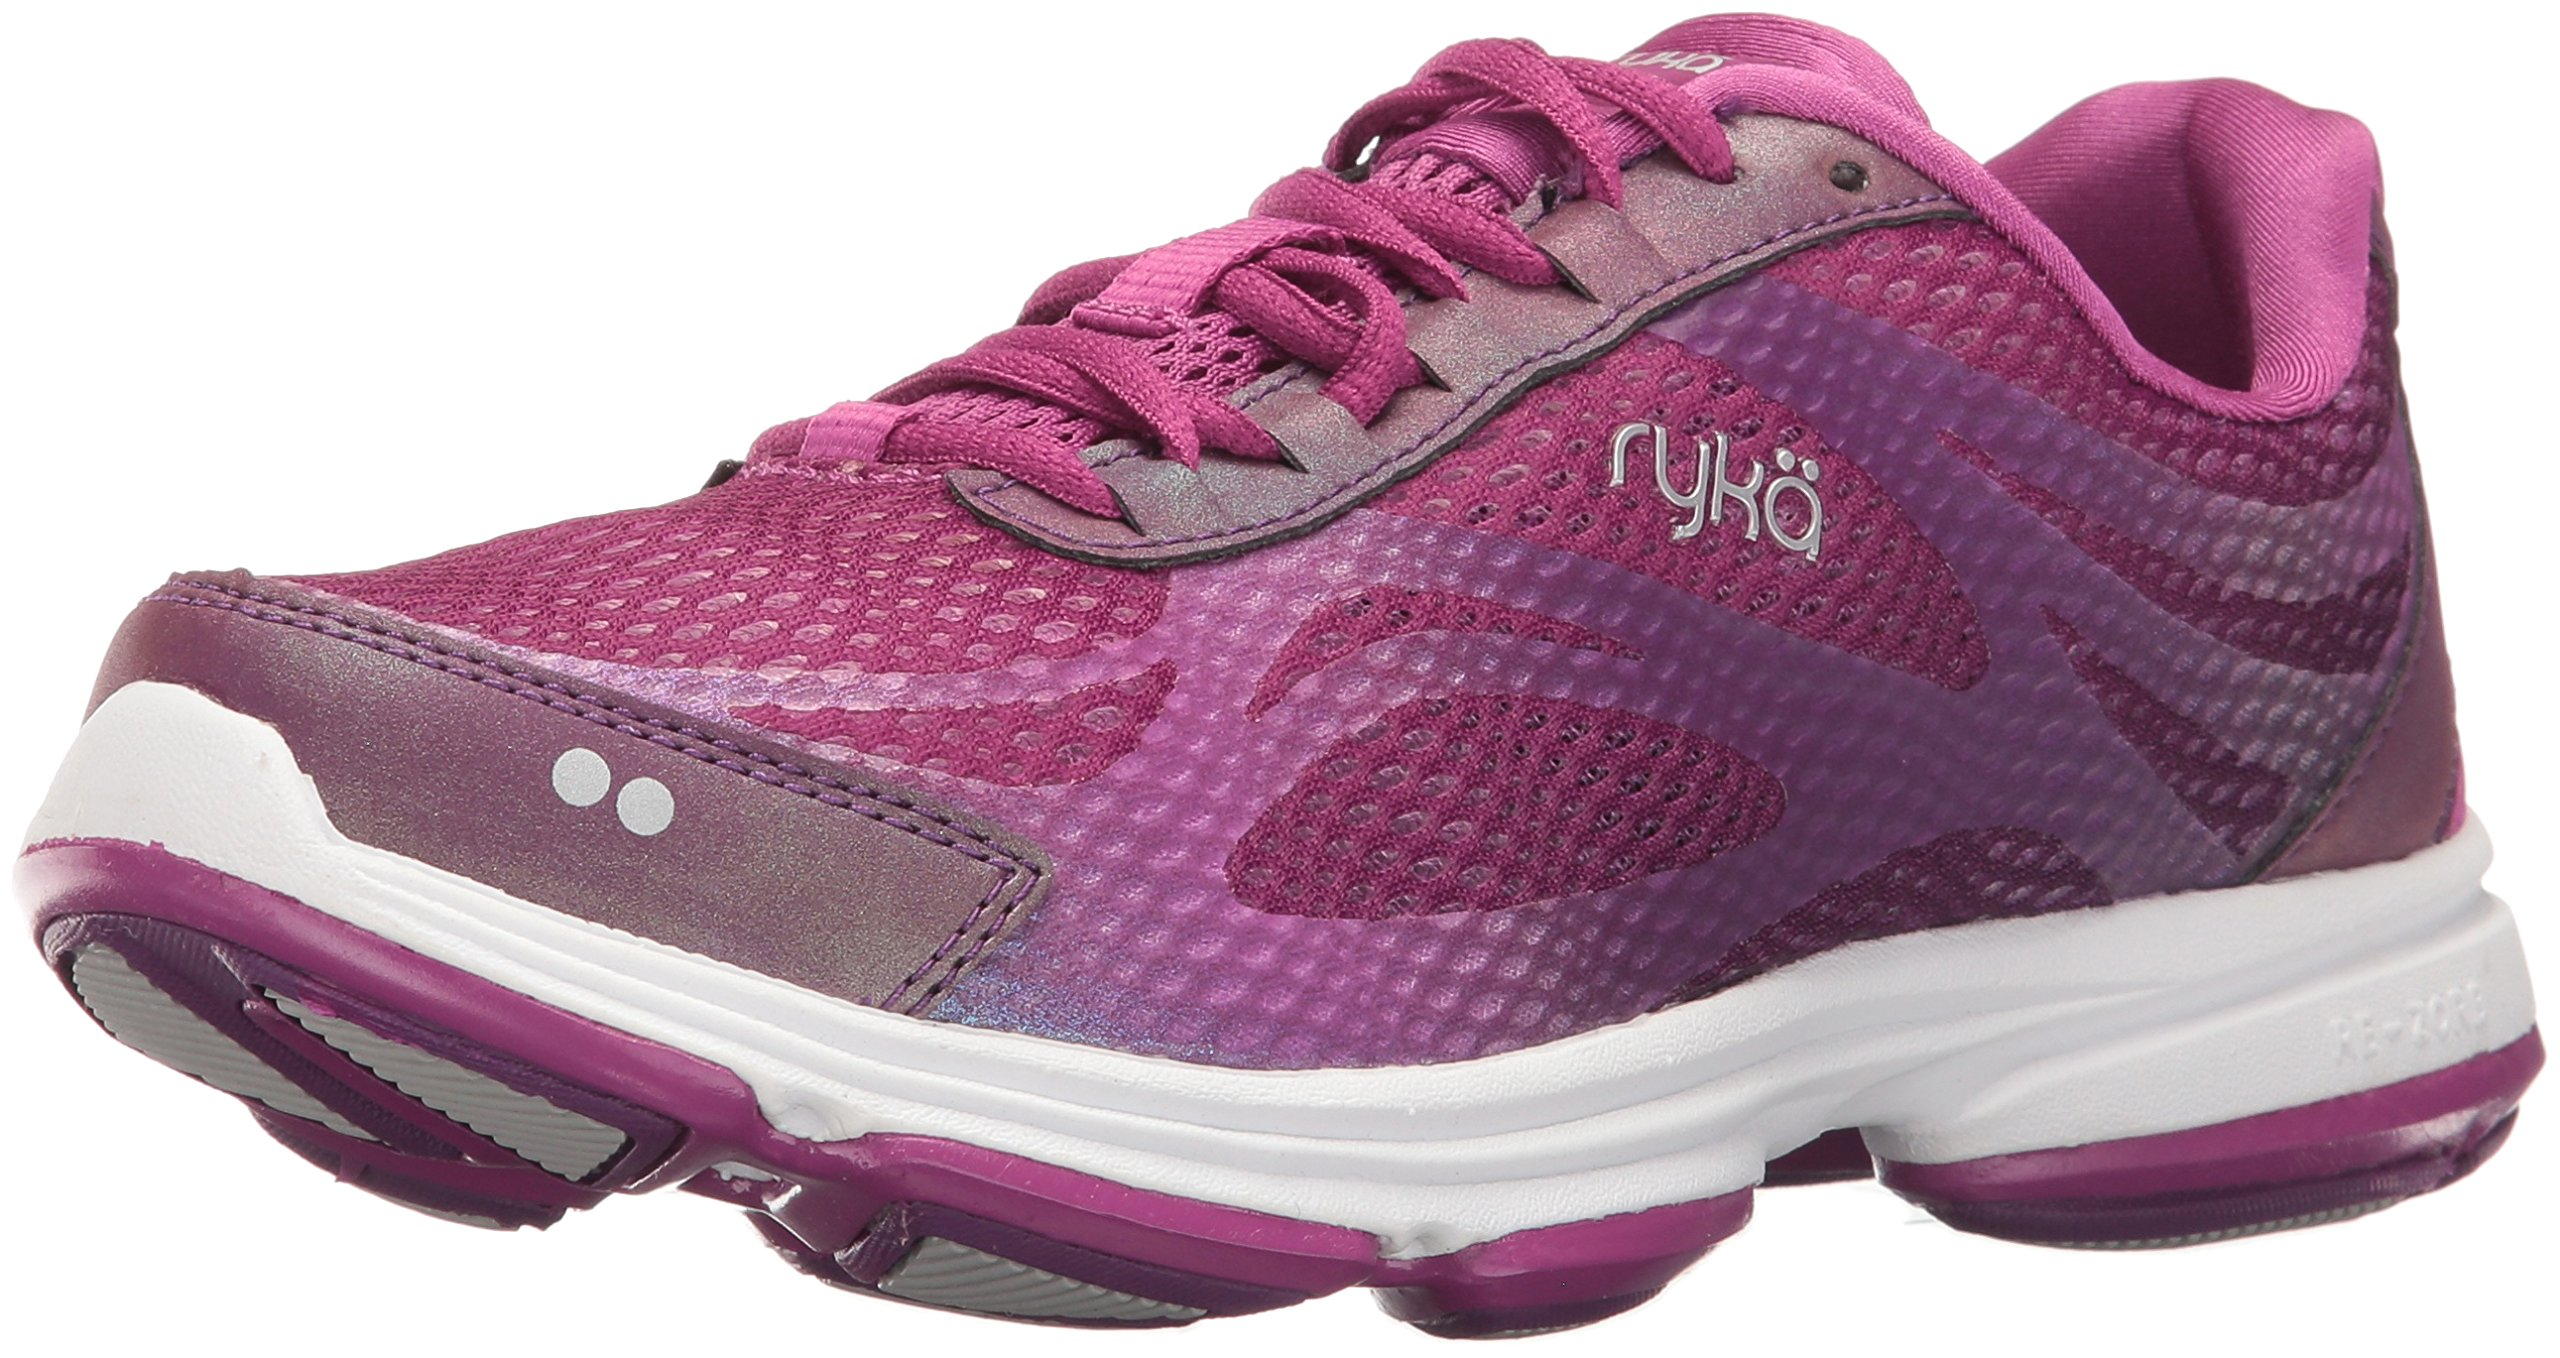 Ryka Women's Devotion Plus 2 Cross Trainer,Grape Juice/Vivid Berry/Chrome Silver